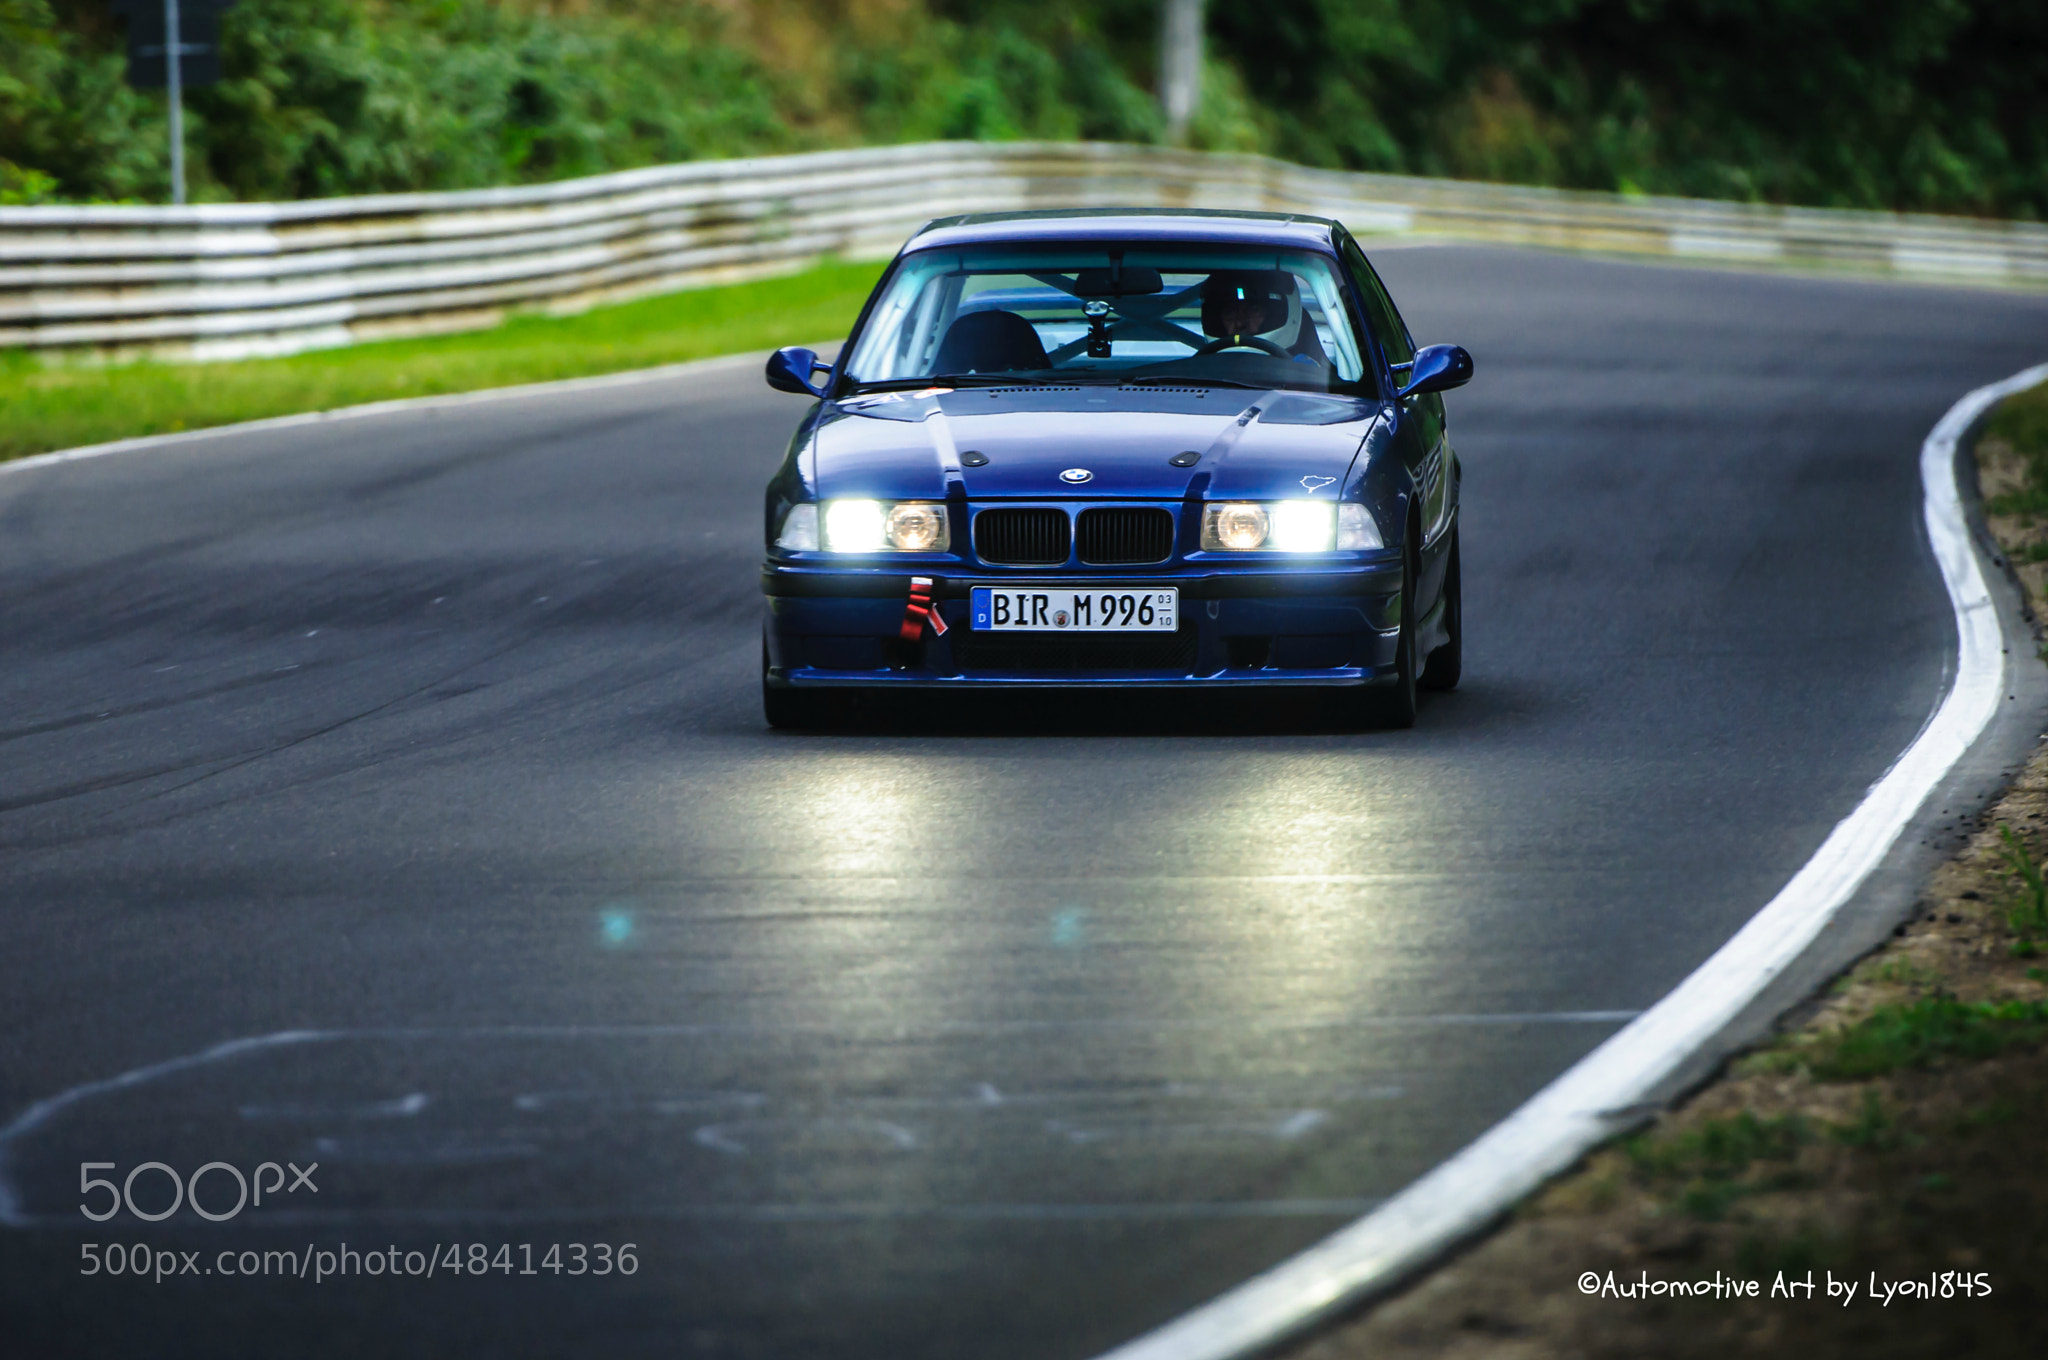 Photograph BMW M3 by lyon1845 on 500px